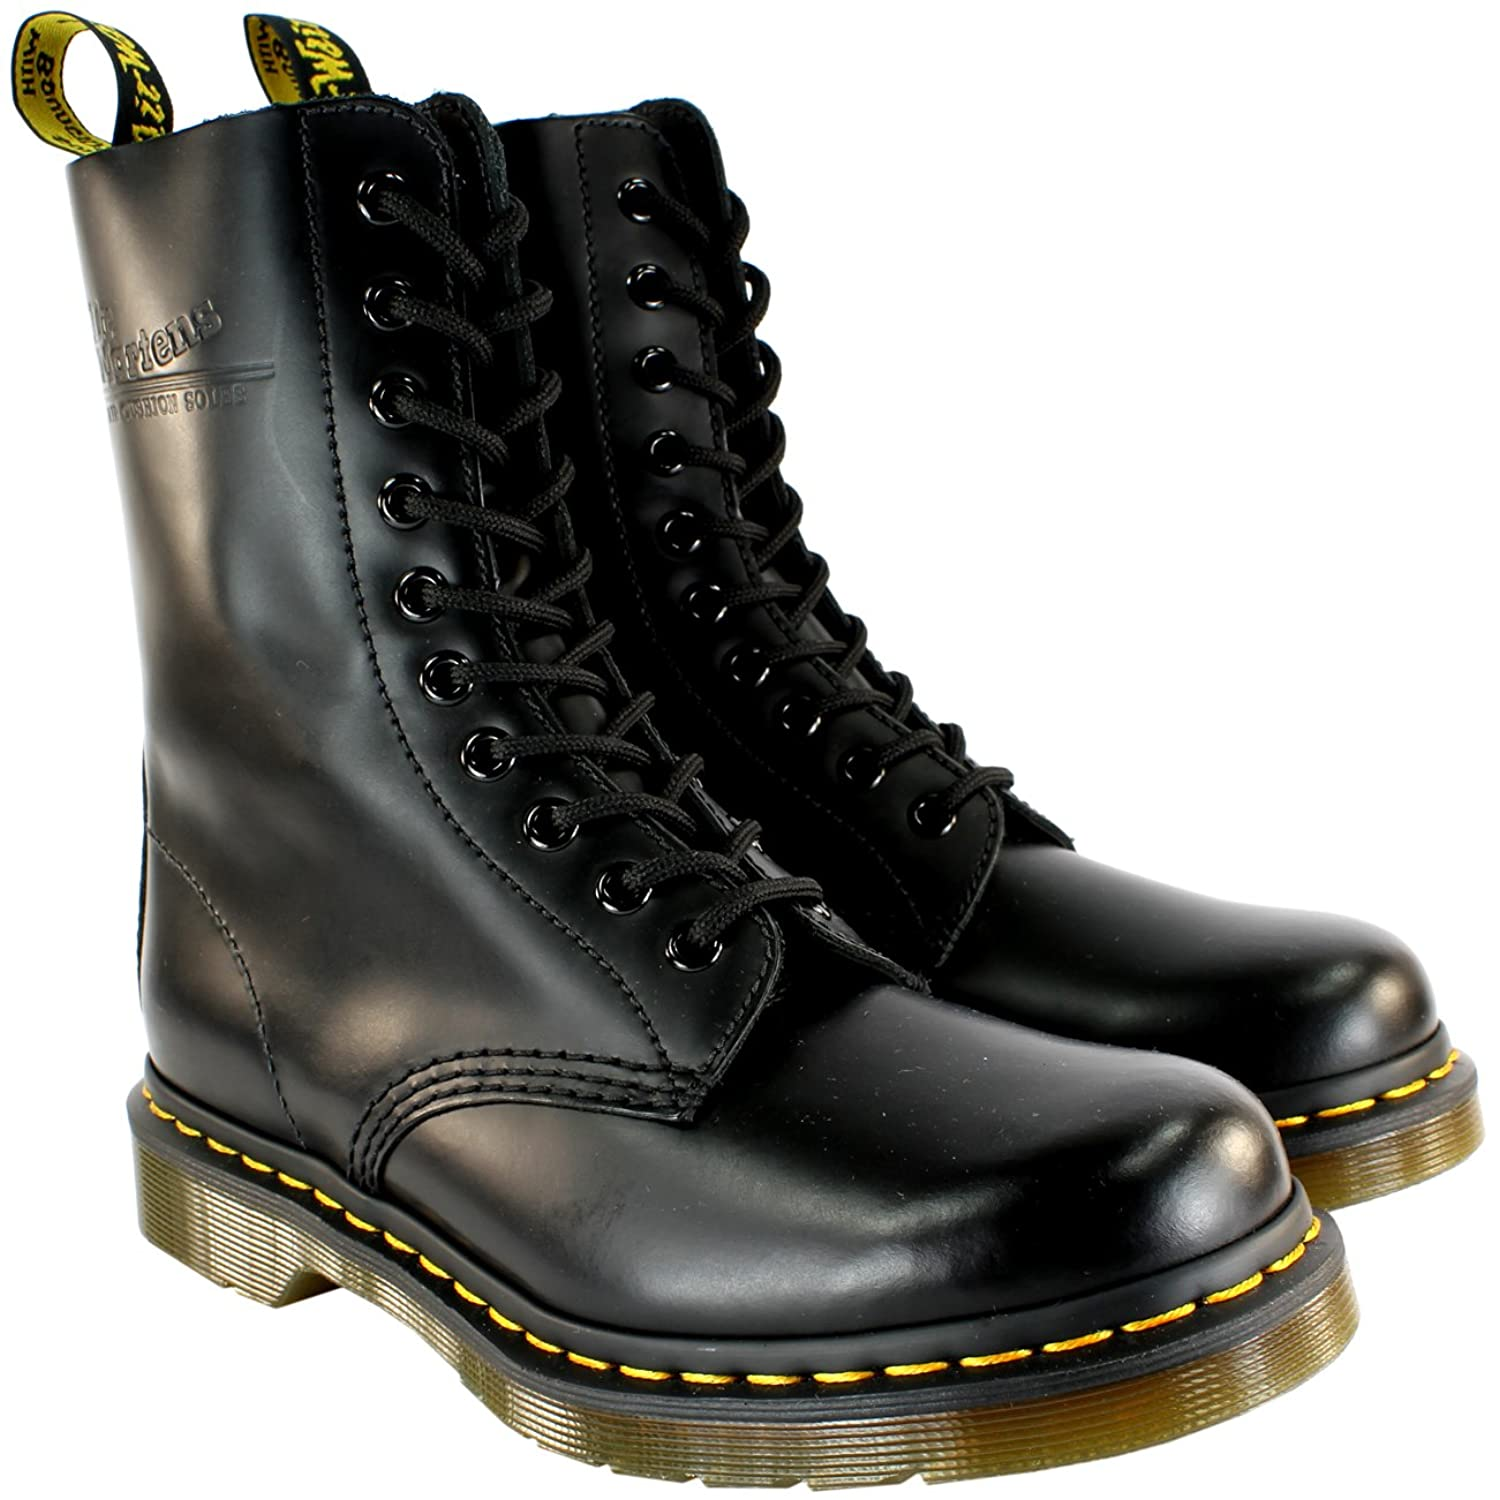 Womens Dr Martens 1490 Classic Lace Up Leather Military Ankle Boot 5-10